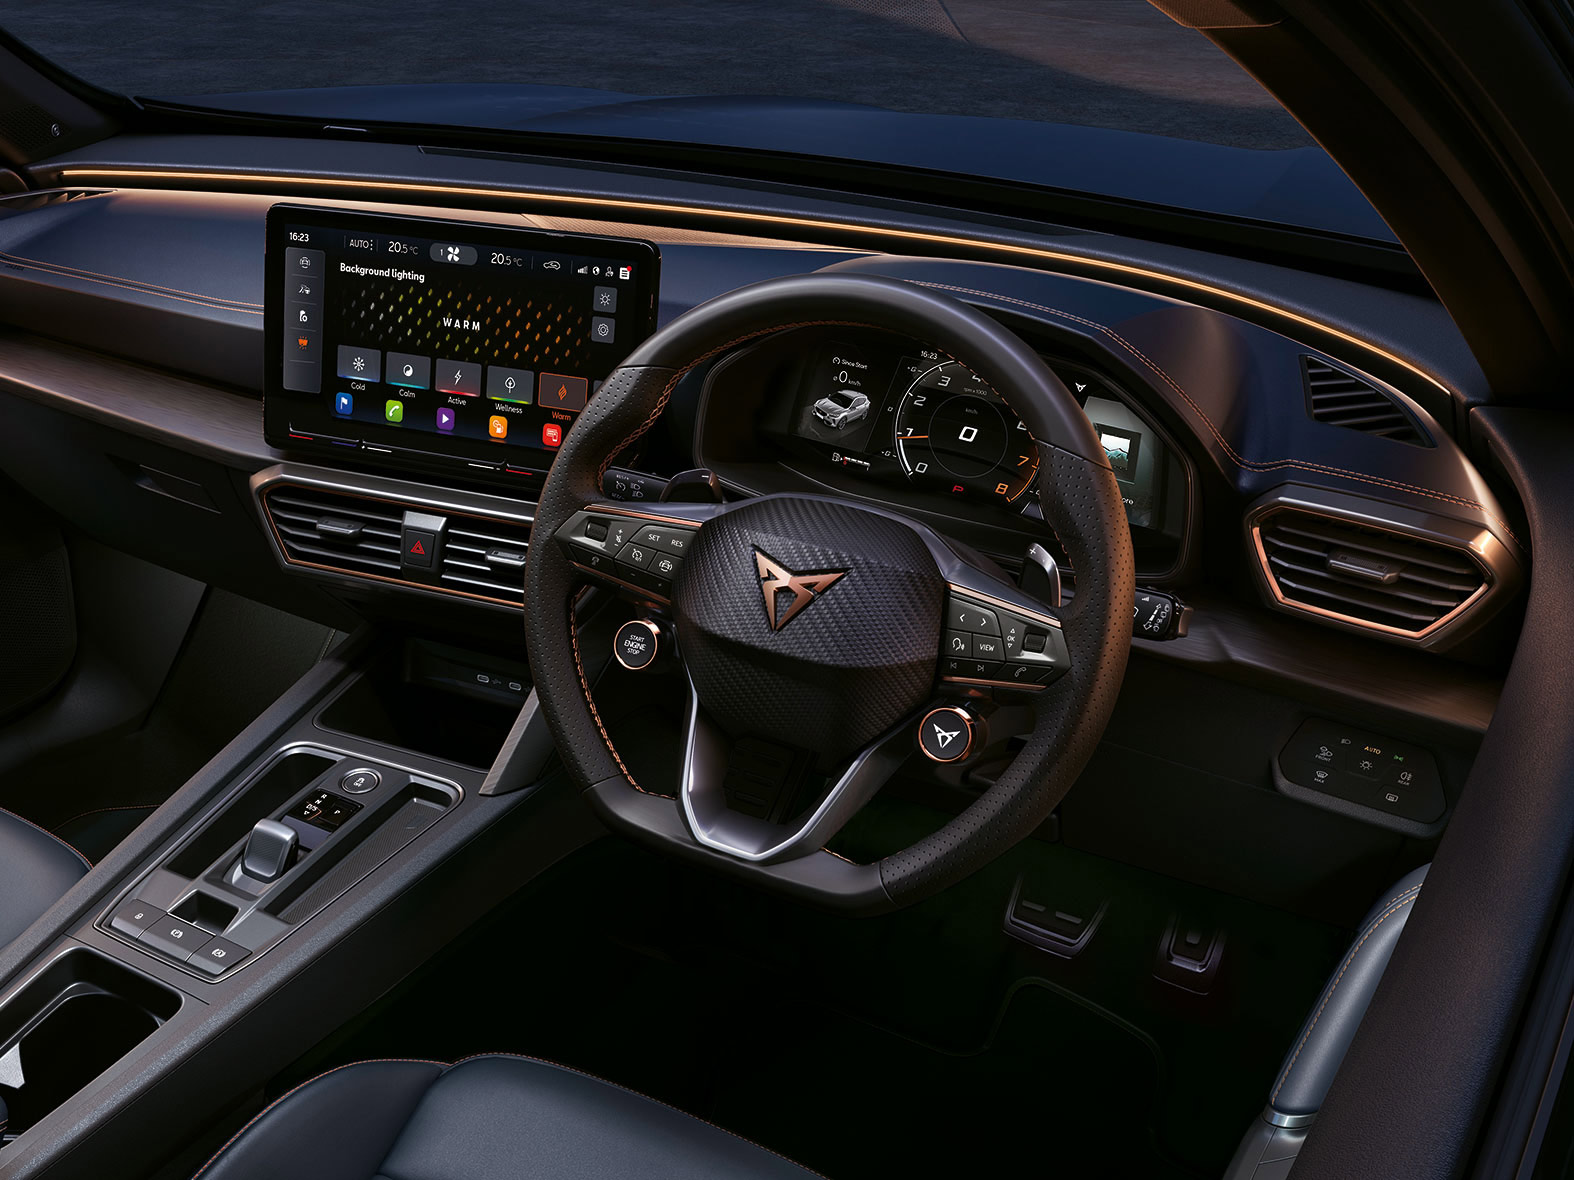 new cupra formentor interior with ambient lighting hues to suit your mood